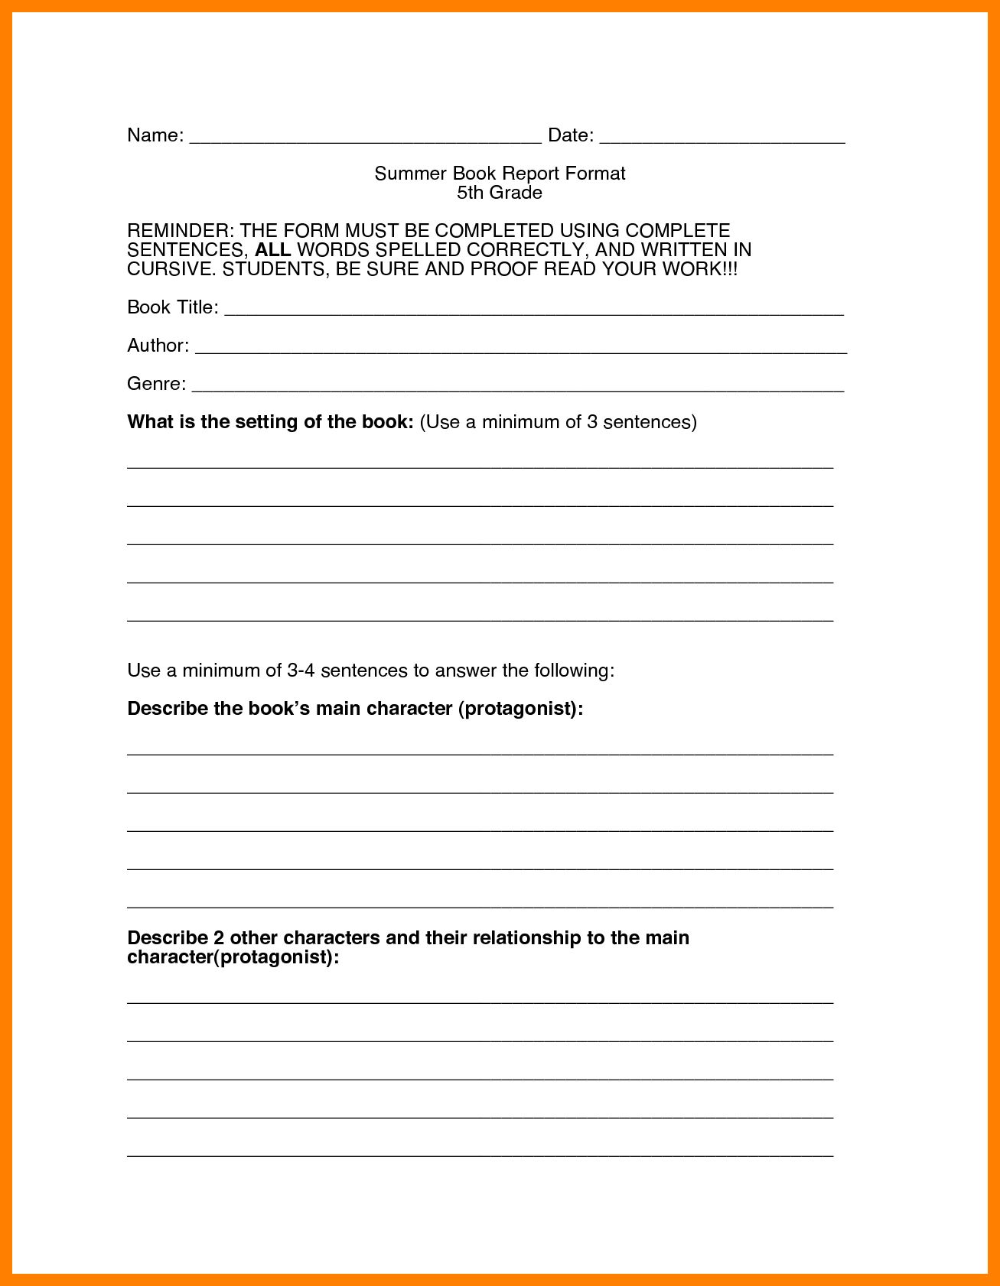 Develop thesis statement research paper